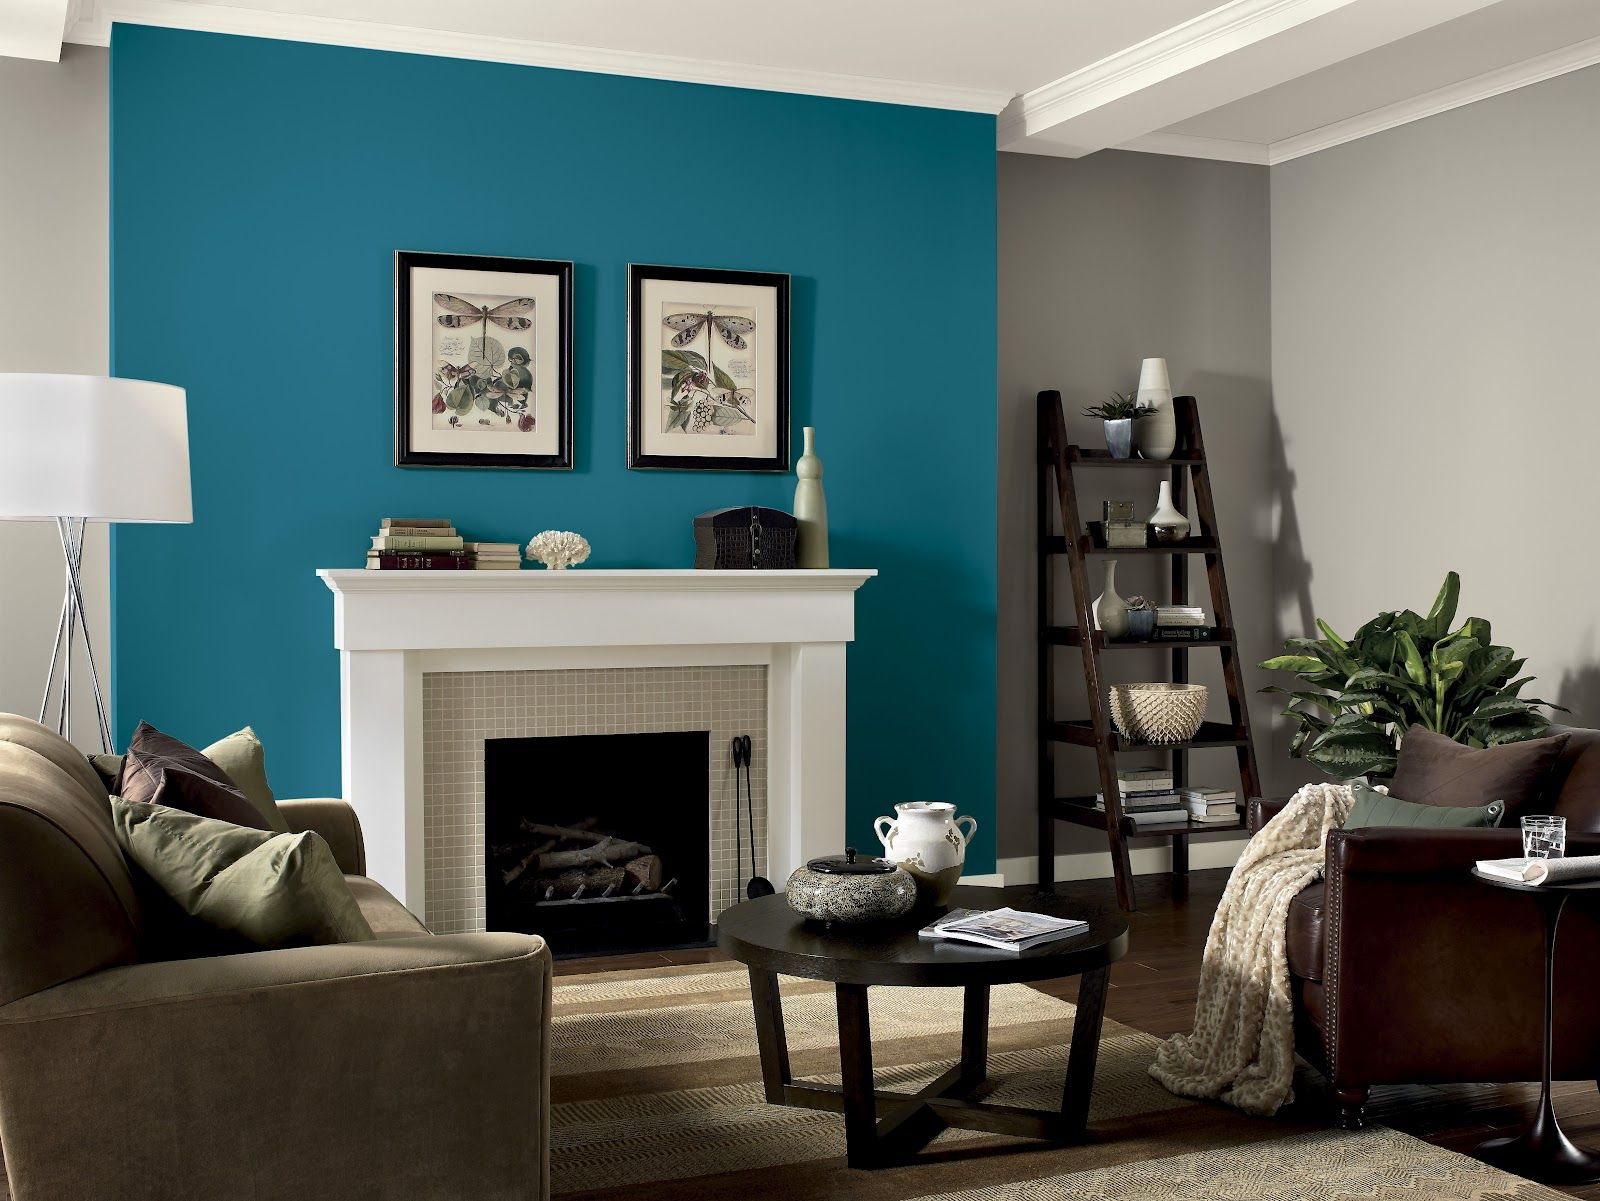 Complementary Colors To Use For Accent Walls Earlyexperts